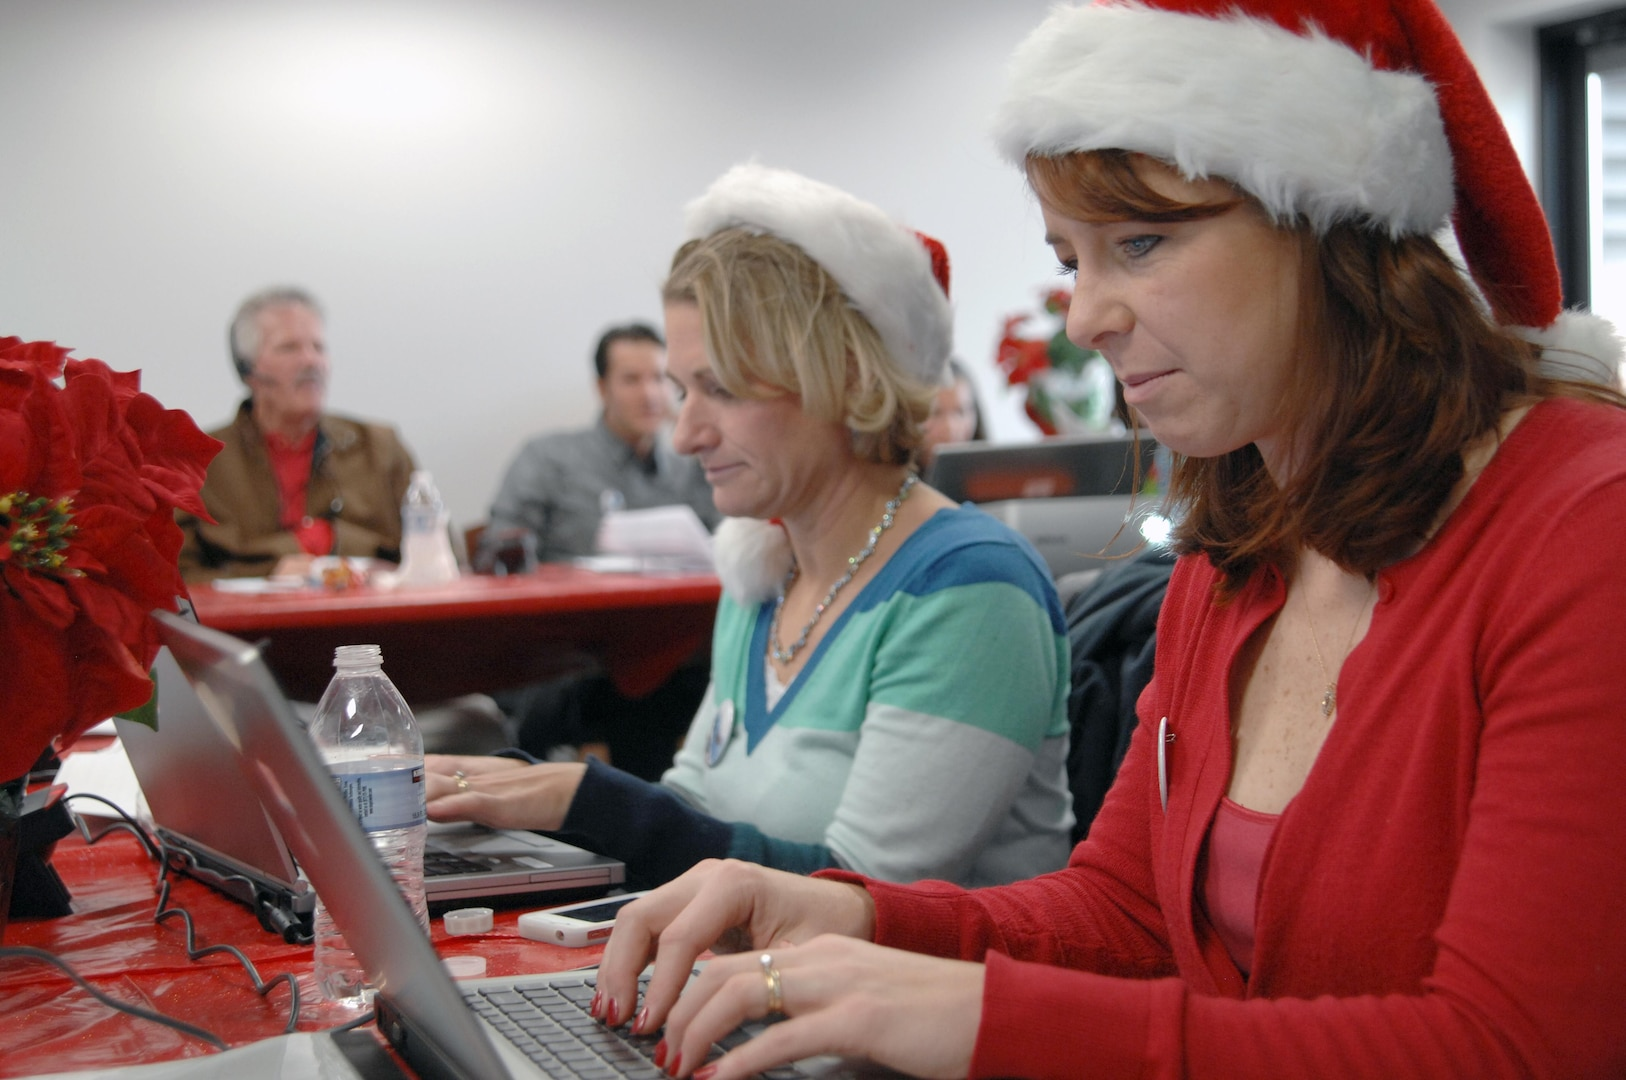 PETERSON AIR FORCE BASE, Colo. - NORAD Tracks Santa volunteers answer emails from Santa trackers across the globe at the NORAD Tracks Santa Operations Center Dec. 24, 2012. Although calling on the phone is the traditional way of contacting NORAD Tracks Santa, volunteers also answered more than 7,000 emails from people looking for Santa. (U.S. Navy photo by LCDR Bill Lewis)